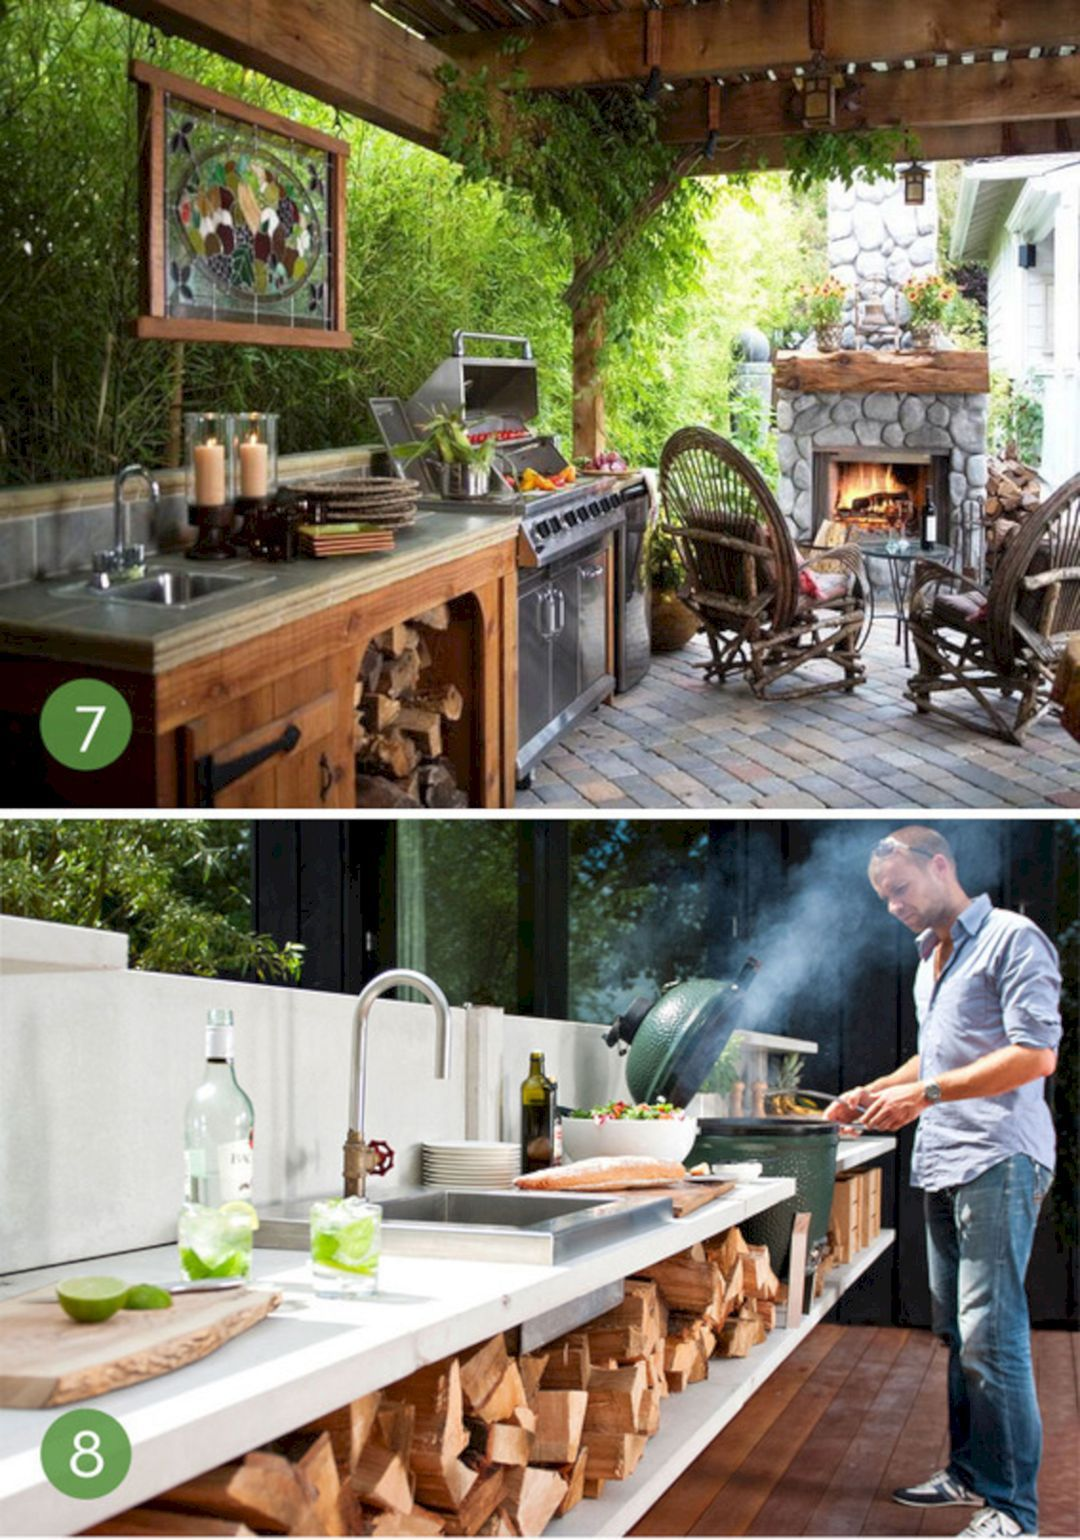 89 incredible outdoor kitchen design ideas that most inspired 07 simple outdoor kitchen on outdoor kitchen easy id=67027